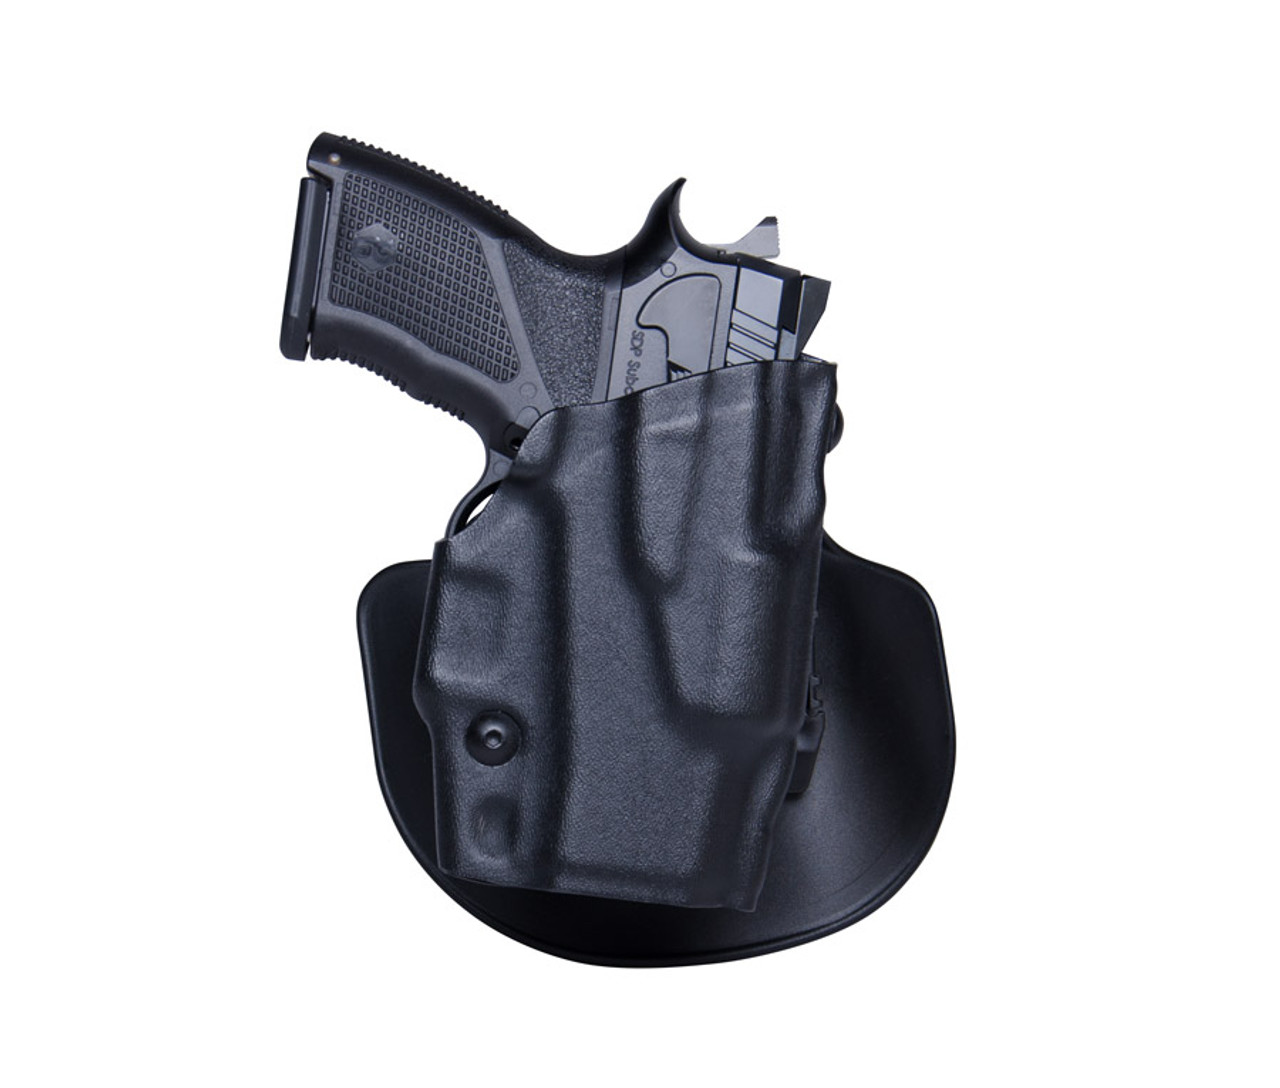 SPHINX SUBCOMPACT ALS LEFT HANDED HOLSTER PADDLE & BELT LOOP COMBO